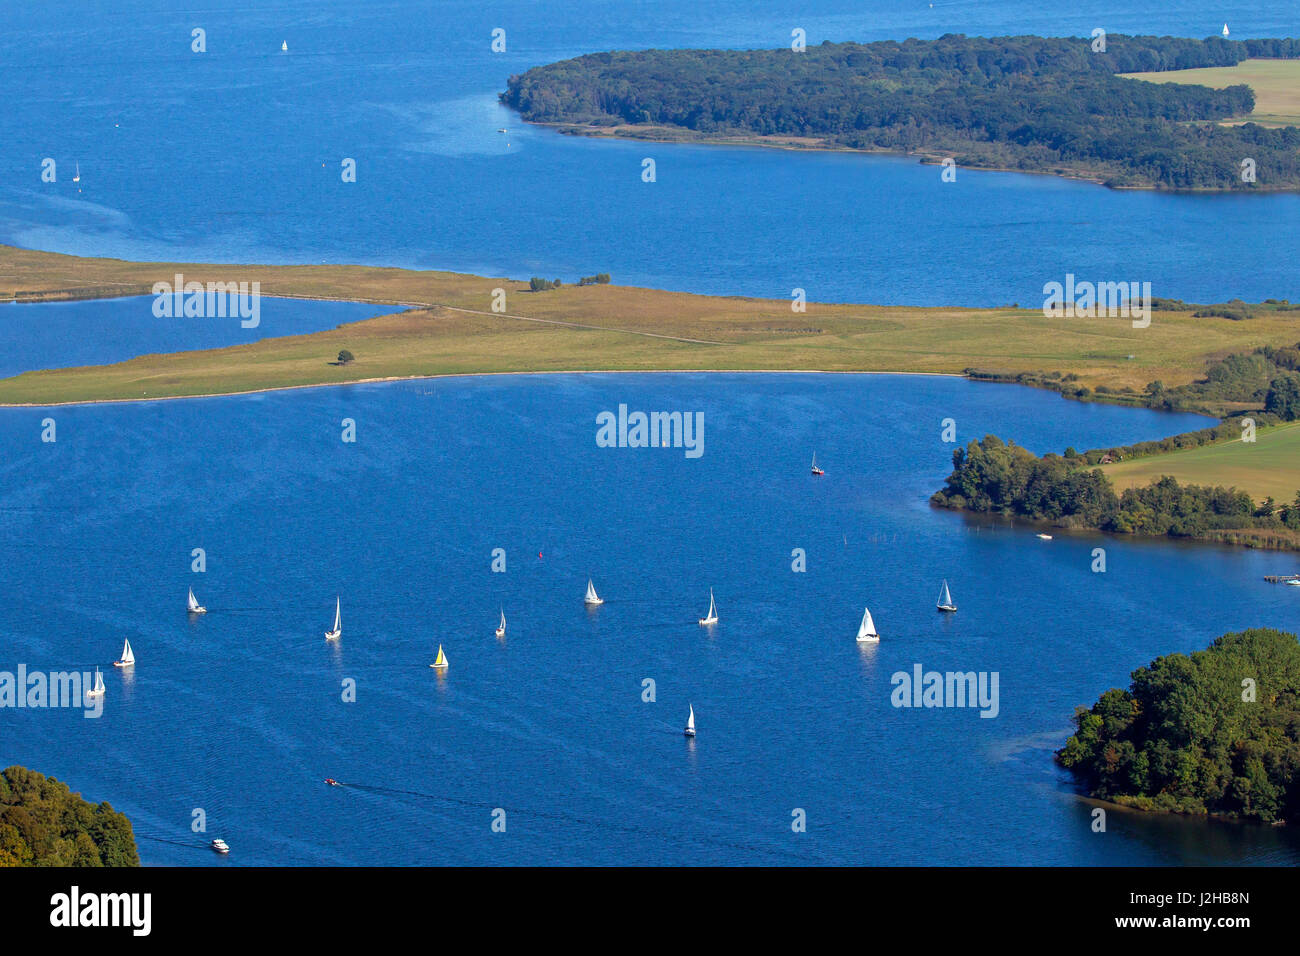 Sailing boats on lake Müritz, Mecklenburg-Western Pomerania, Germany - Stock Image